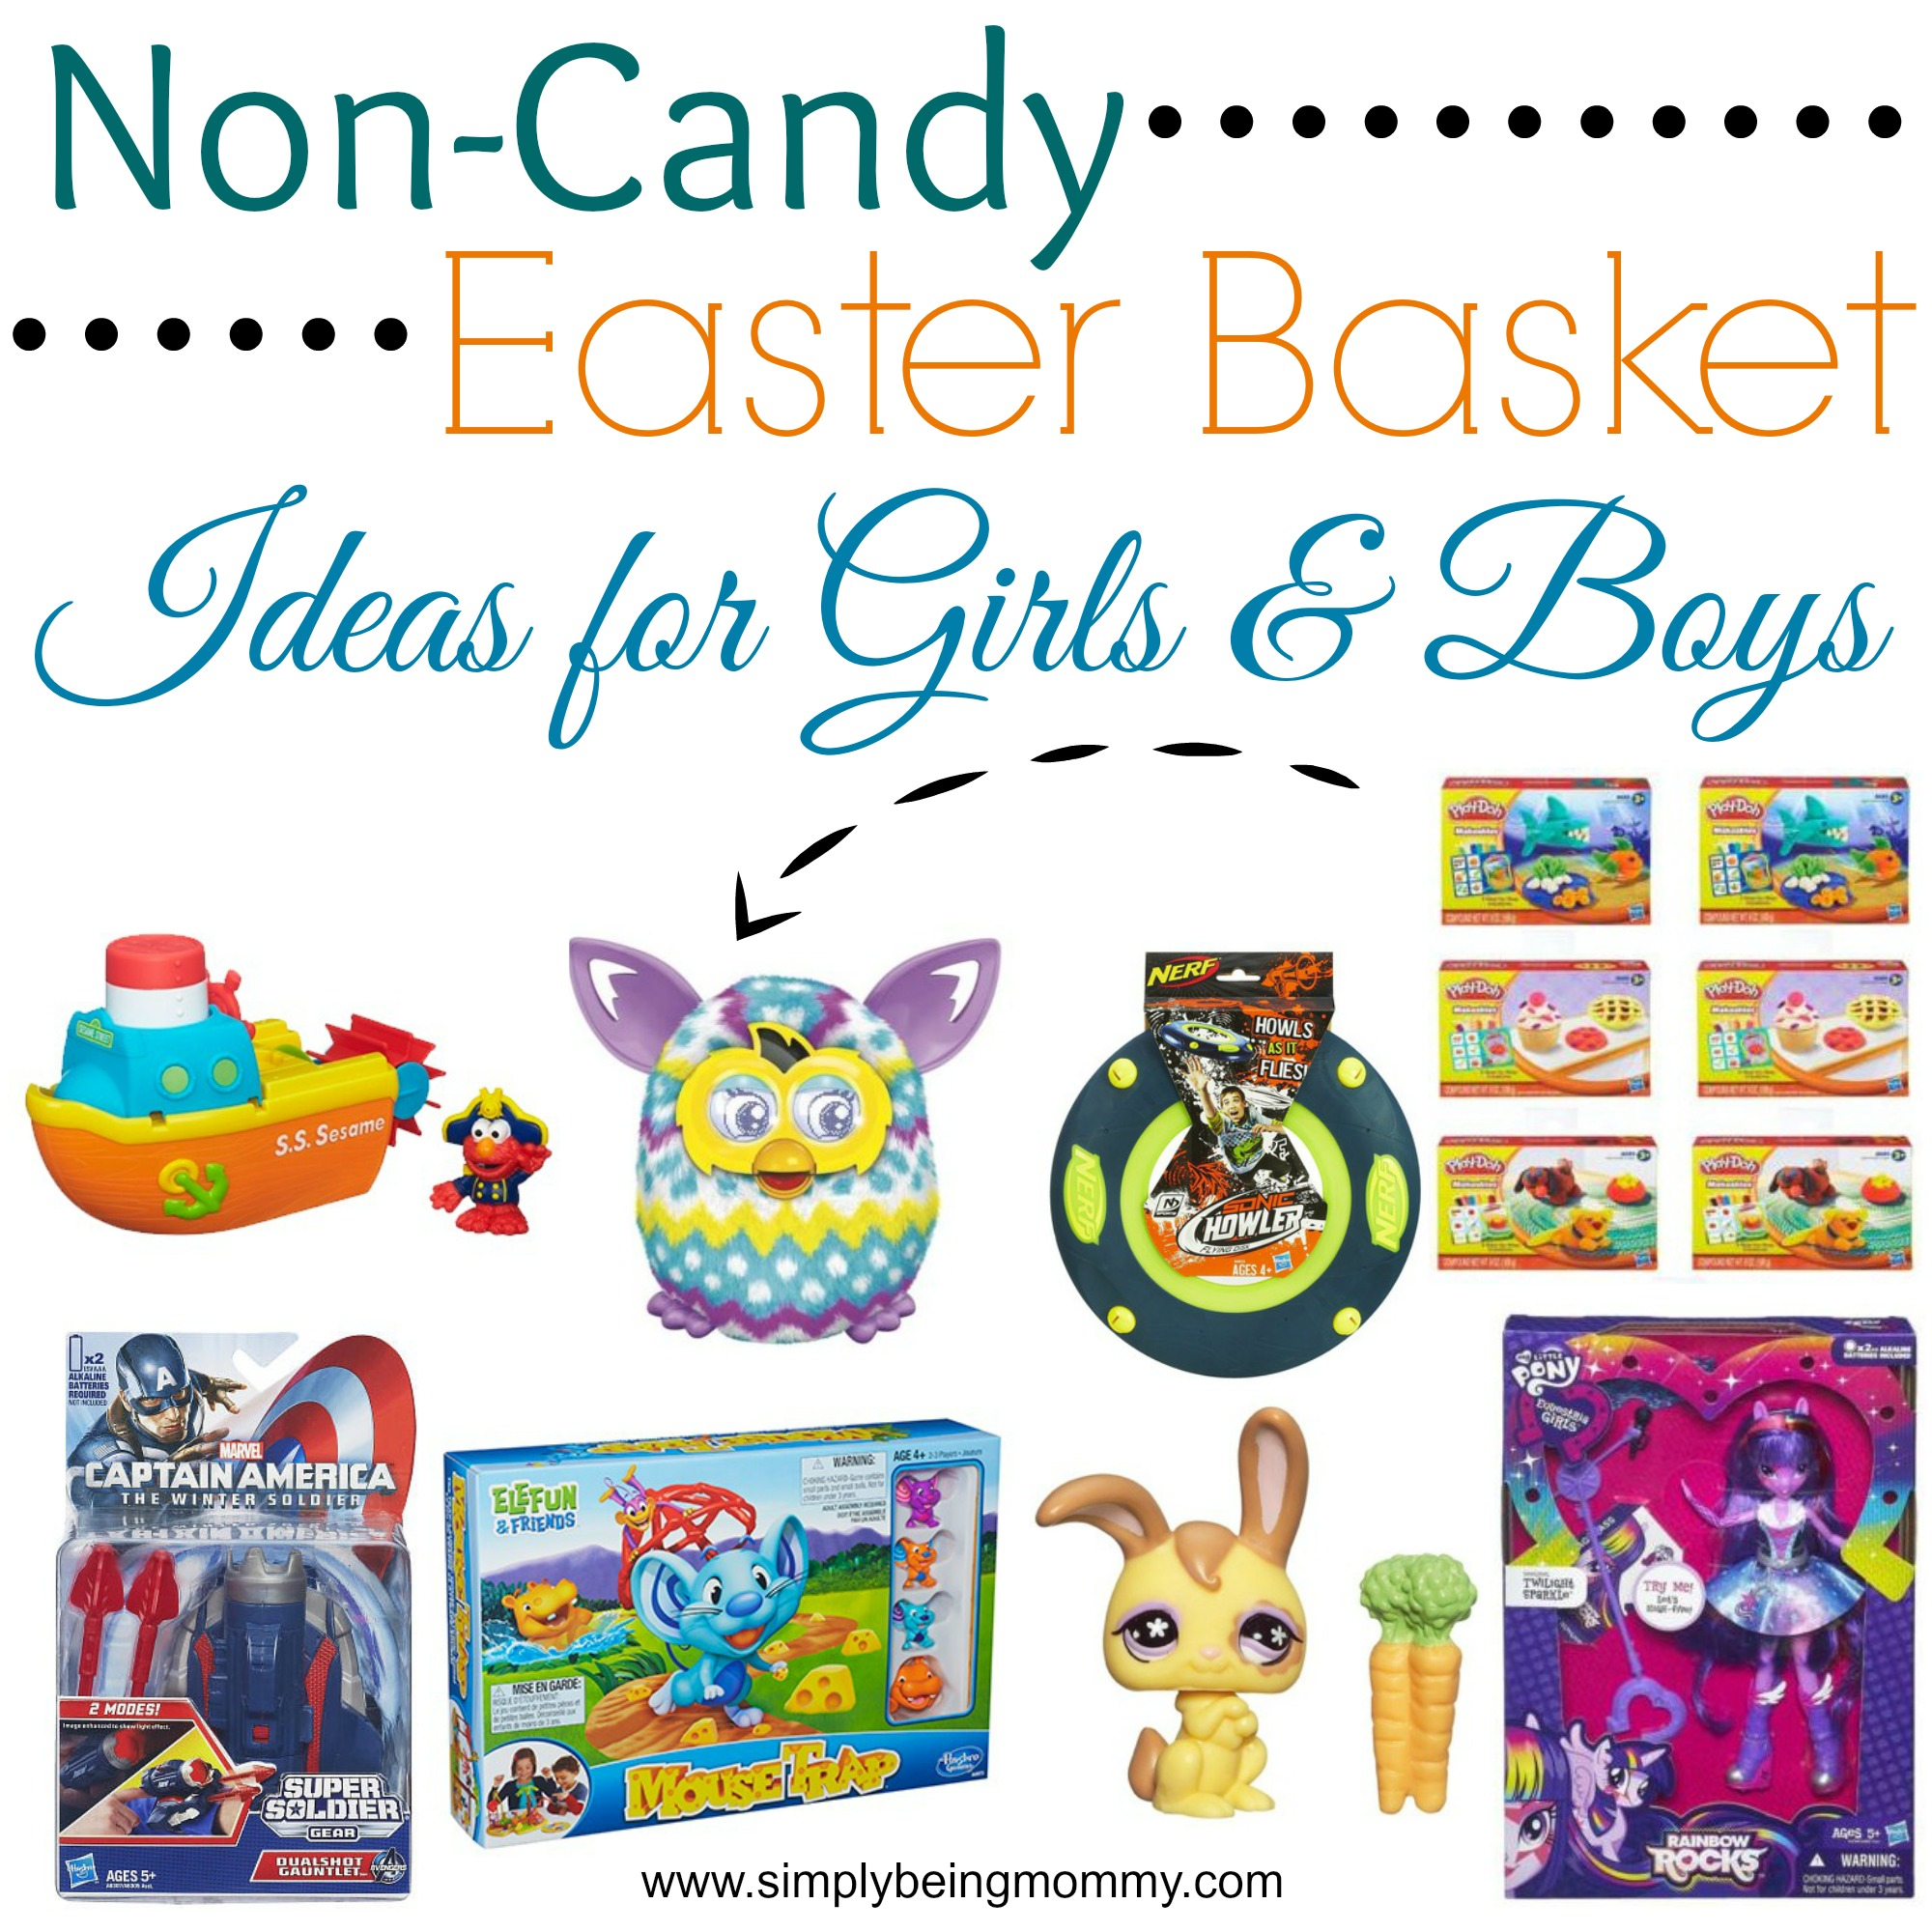 45 non candy easter basket ideas for girls boys simply being mommy negle Gallery